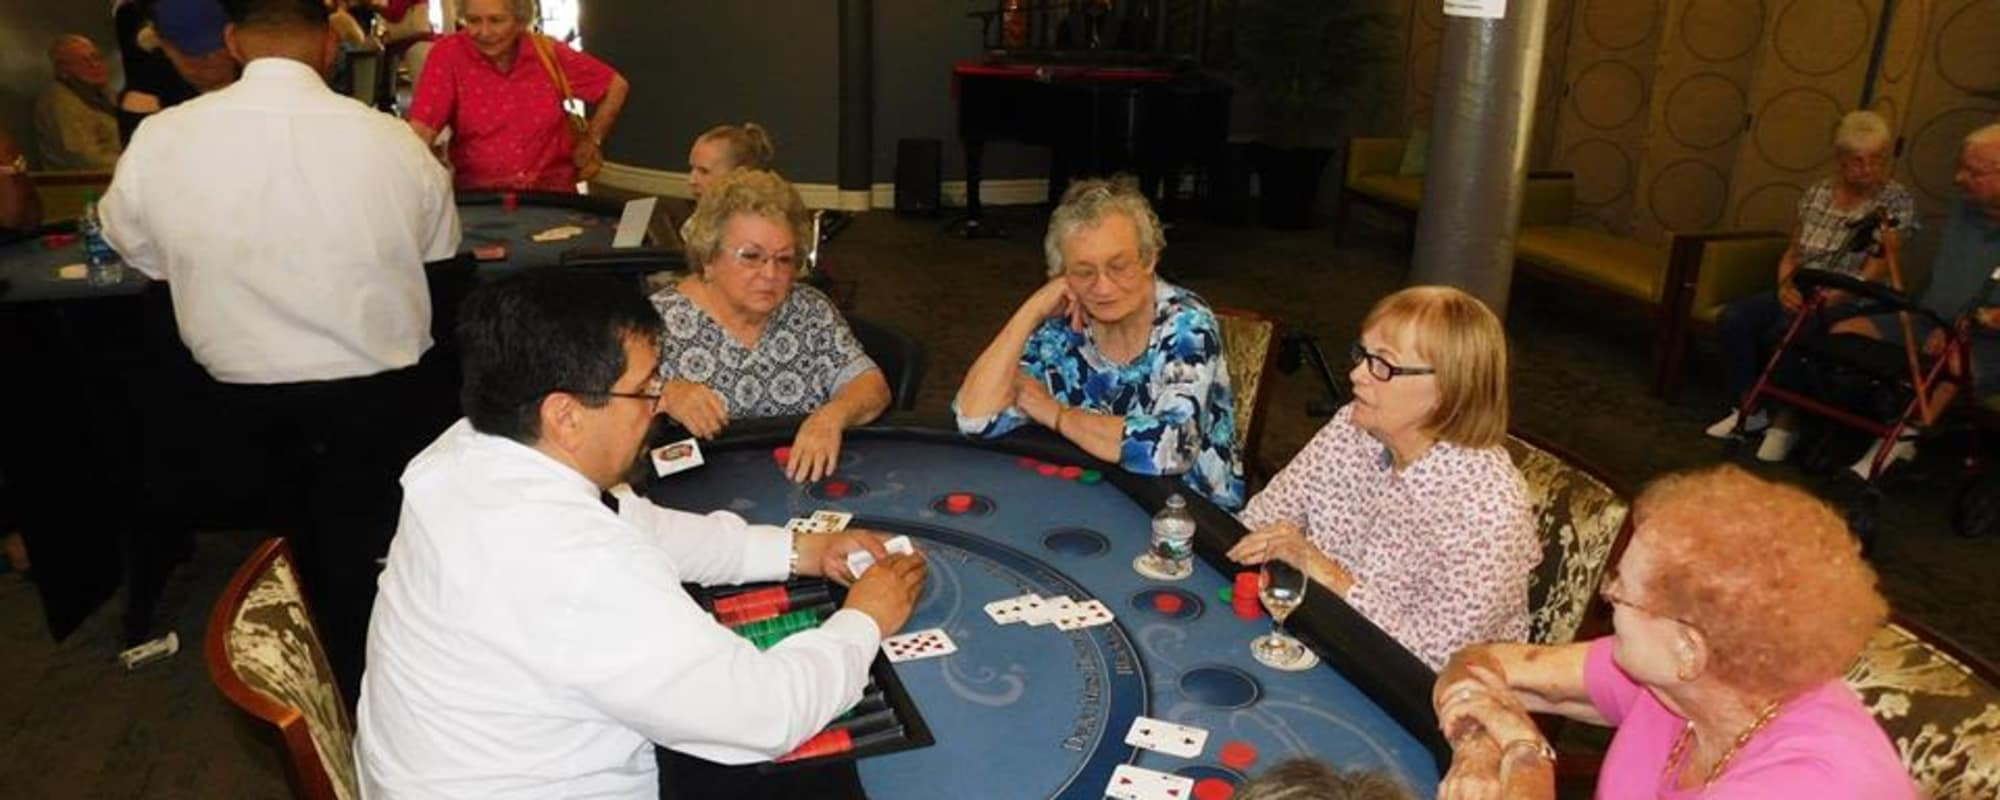 Games at Citrus Place in Riverside, California